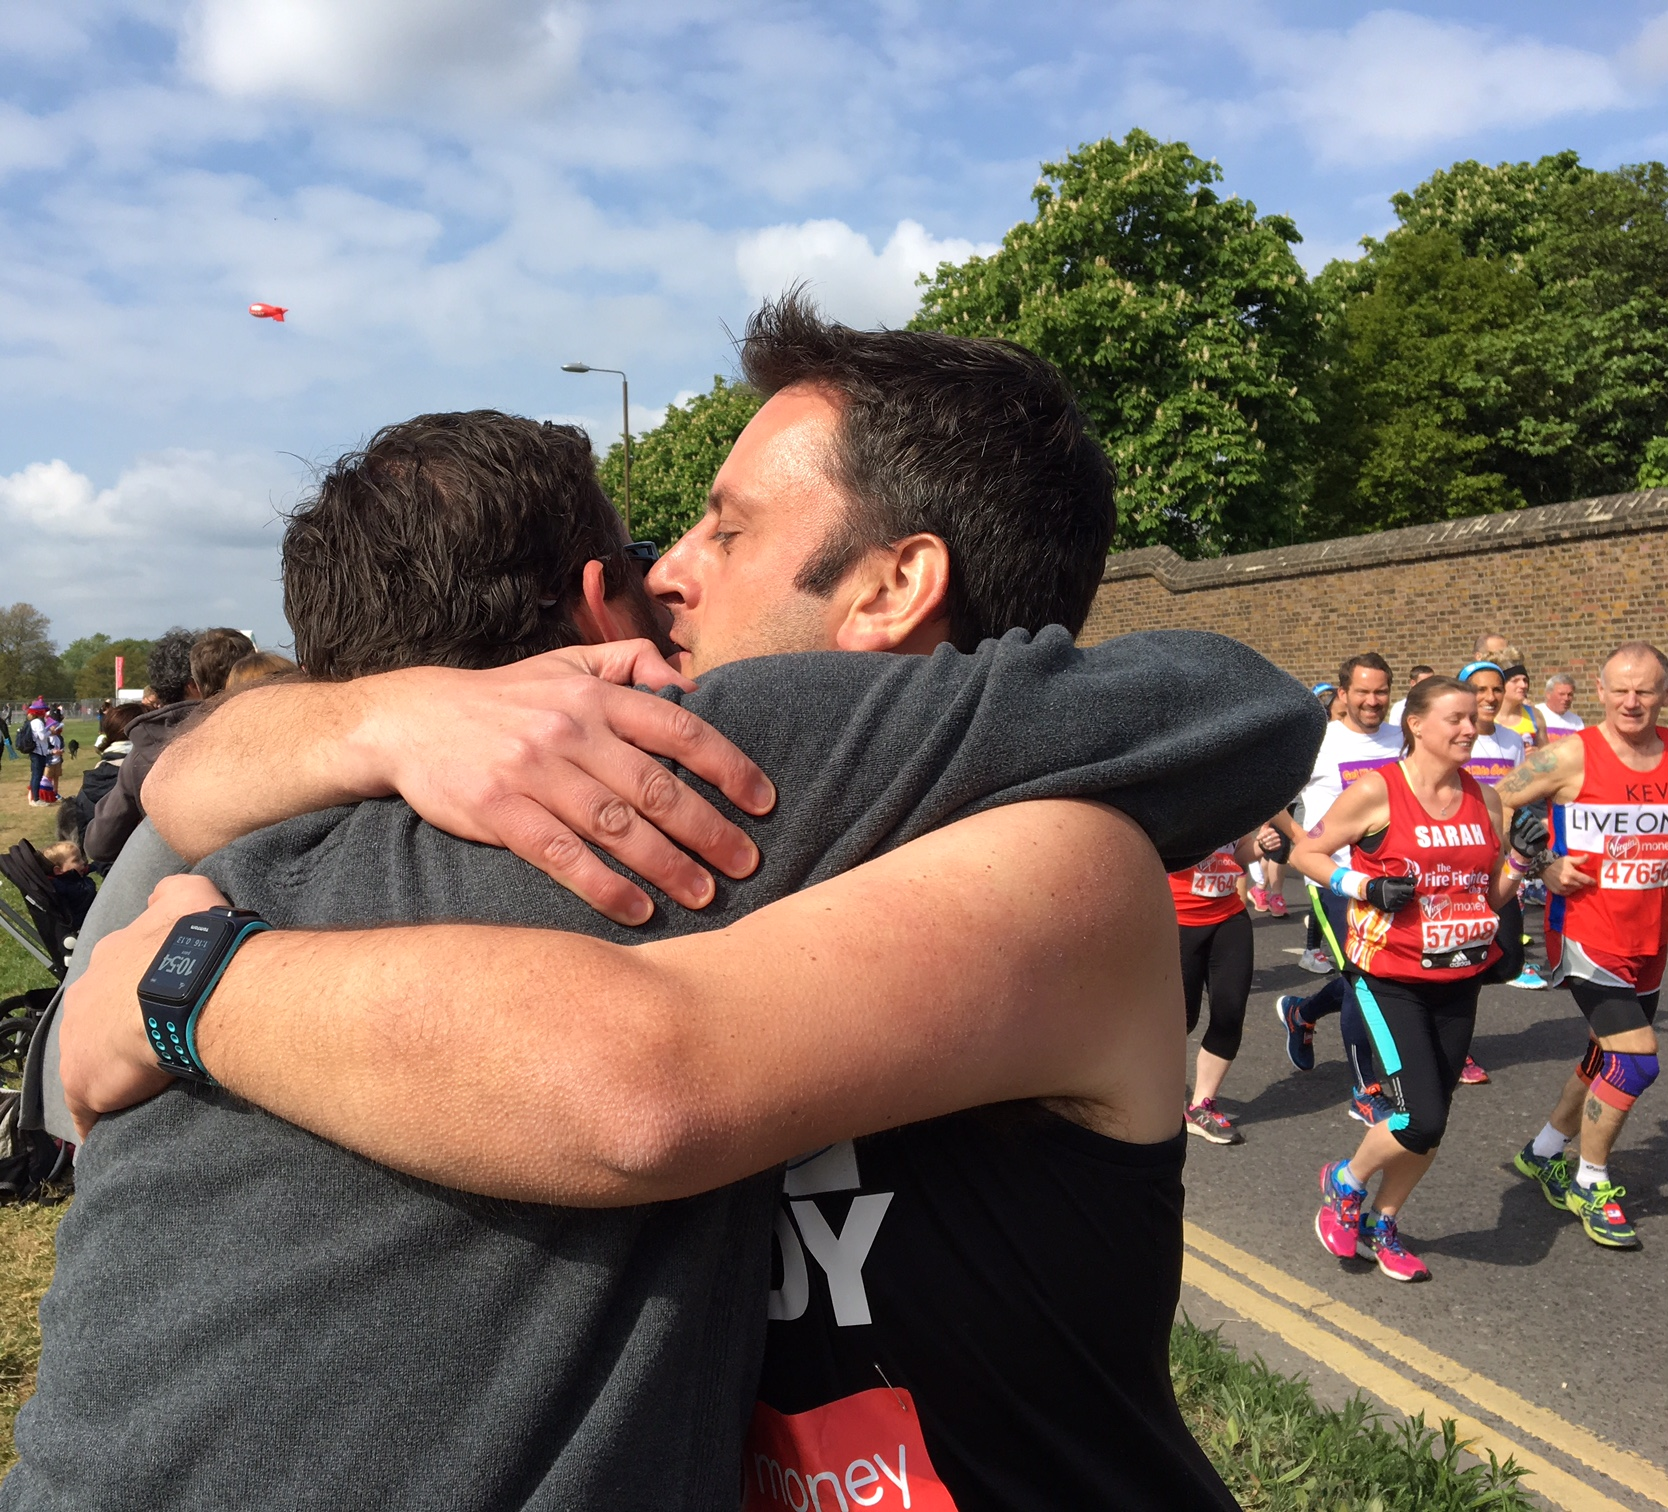 I loved this moment when a runner spotted his cheering friend in the crowd and stopped for a supportive hug. I snapped it and, after everyone passed,sent it to the friend who immediately sent it to the runner's family.